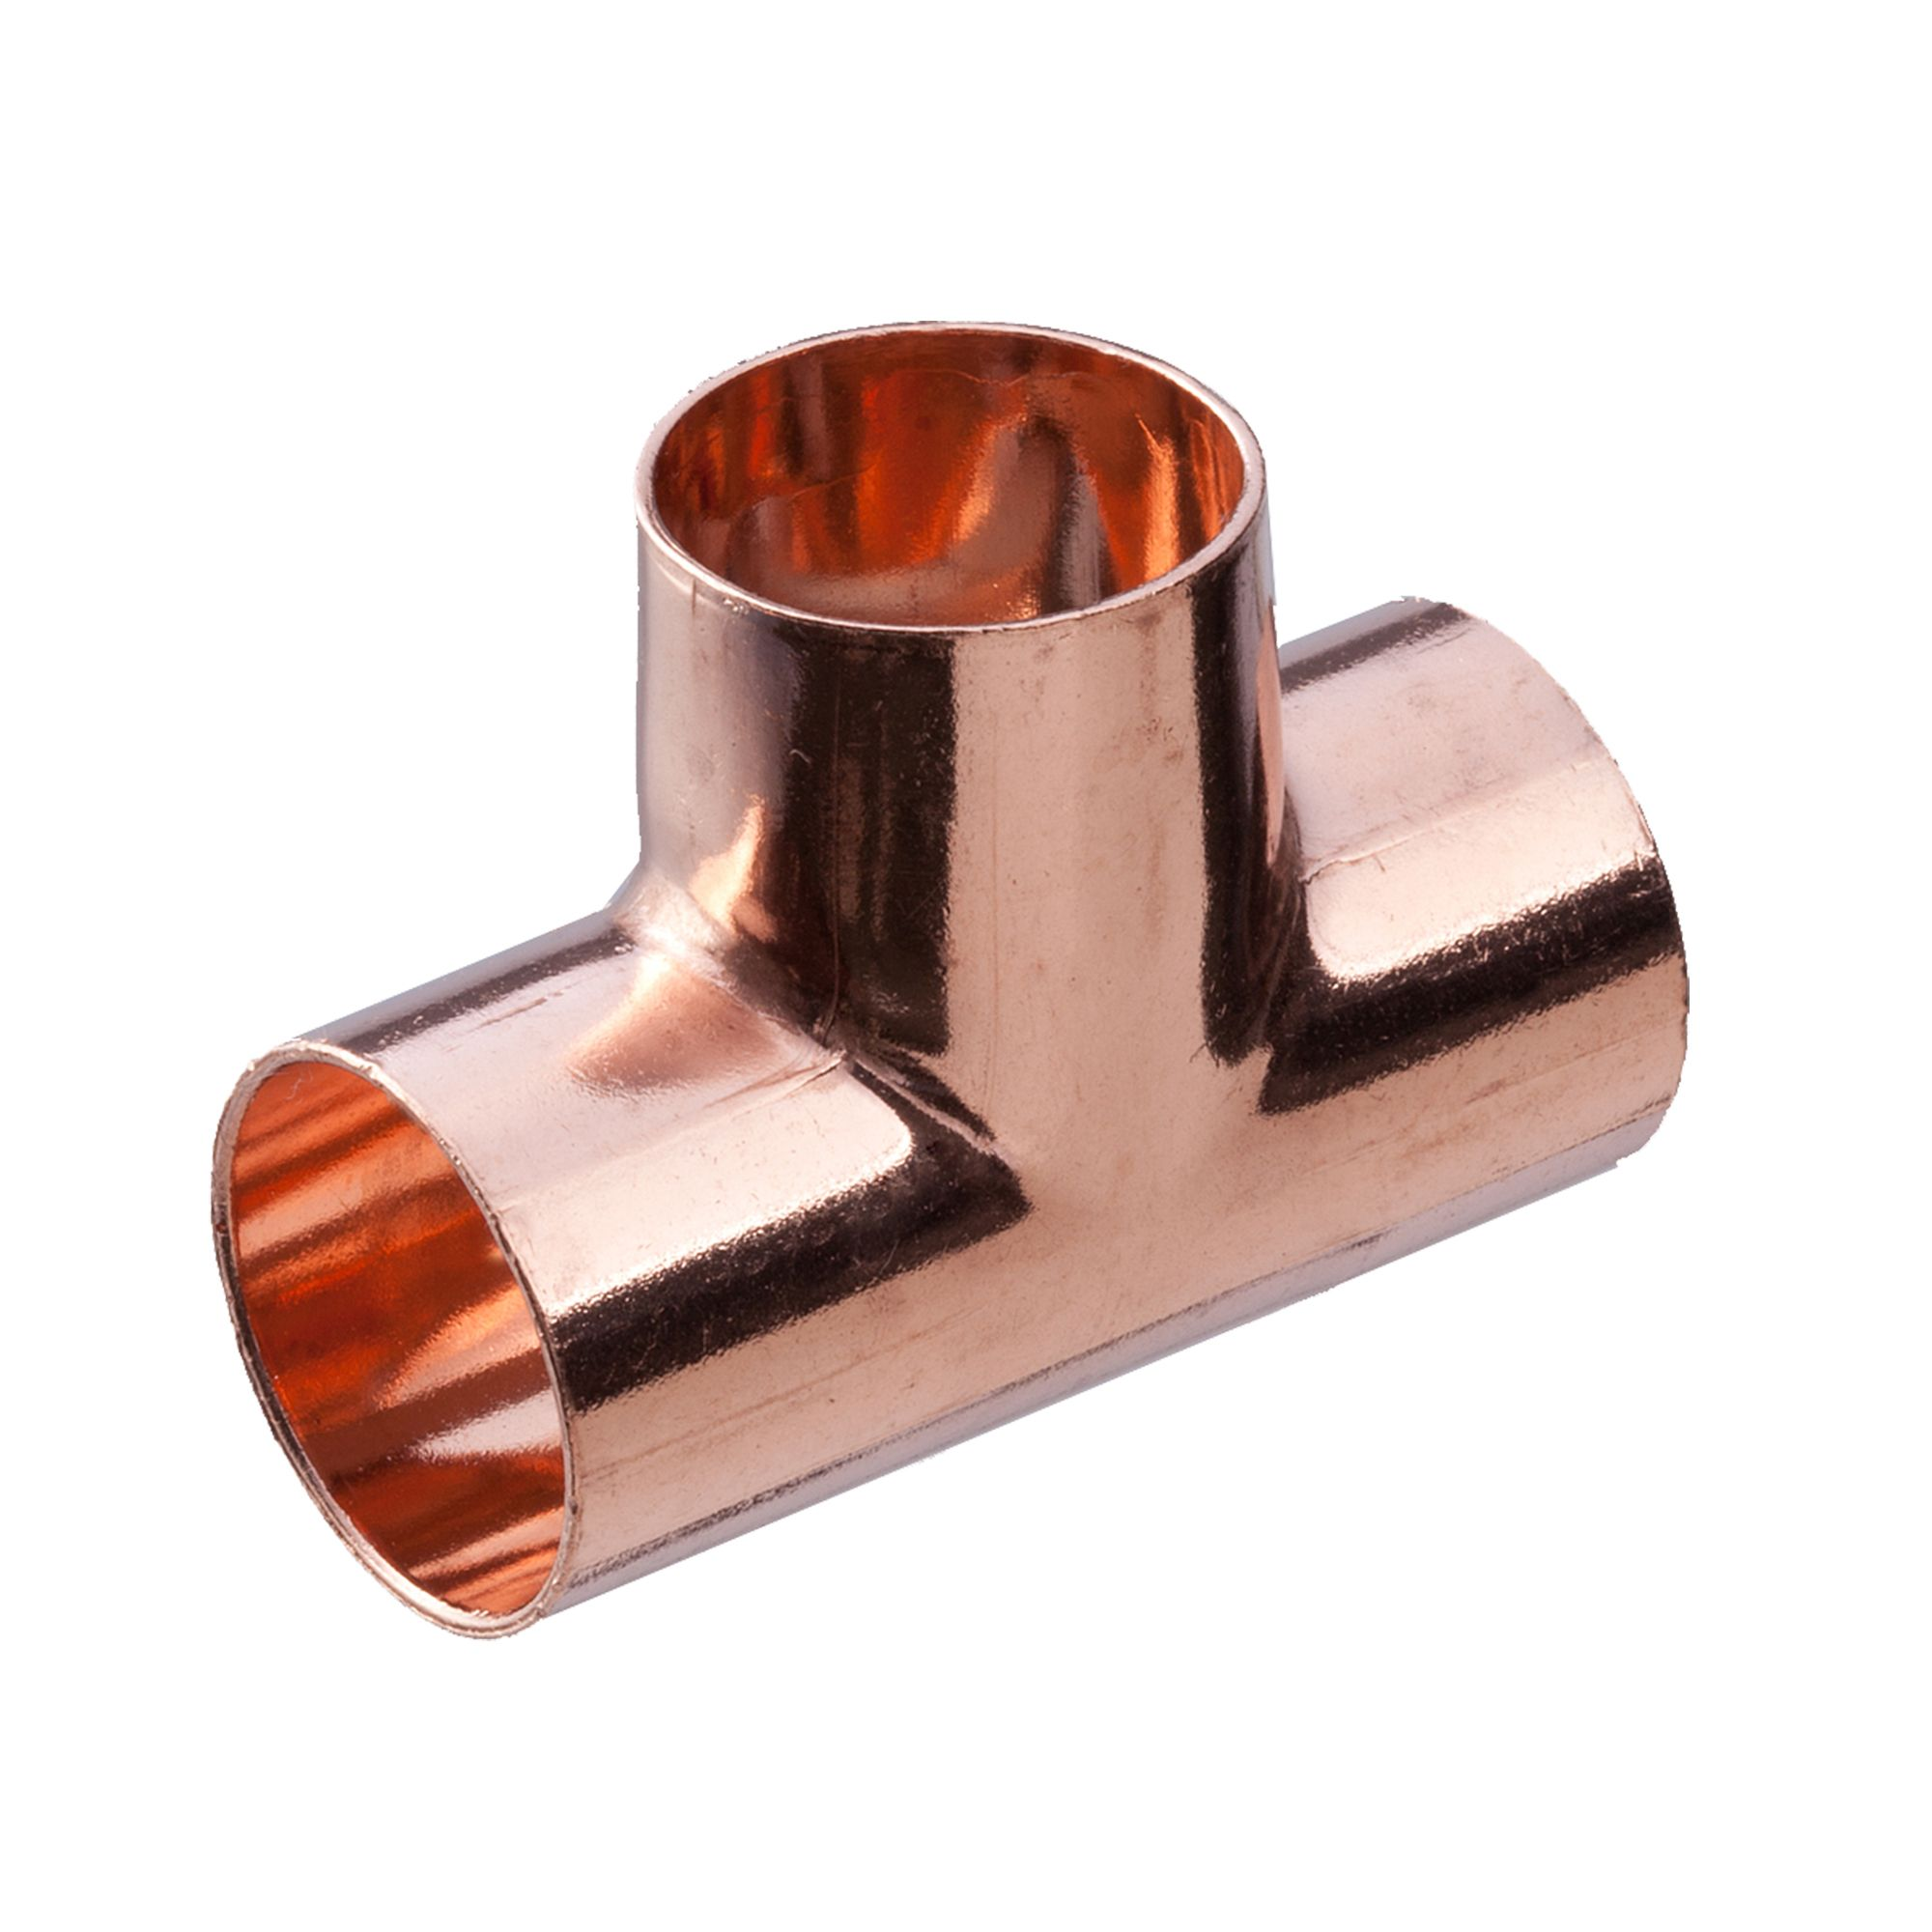 NEW 2 x END FEED copper plumbing pipe 15mm TEE